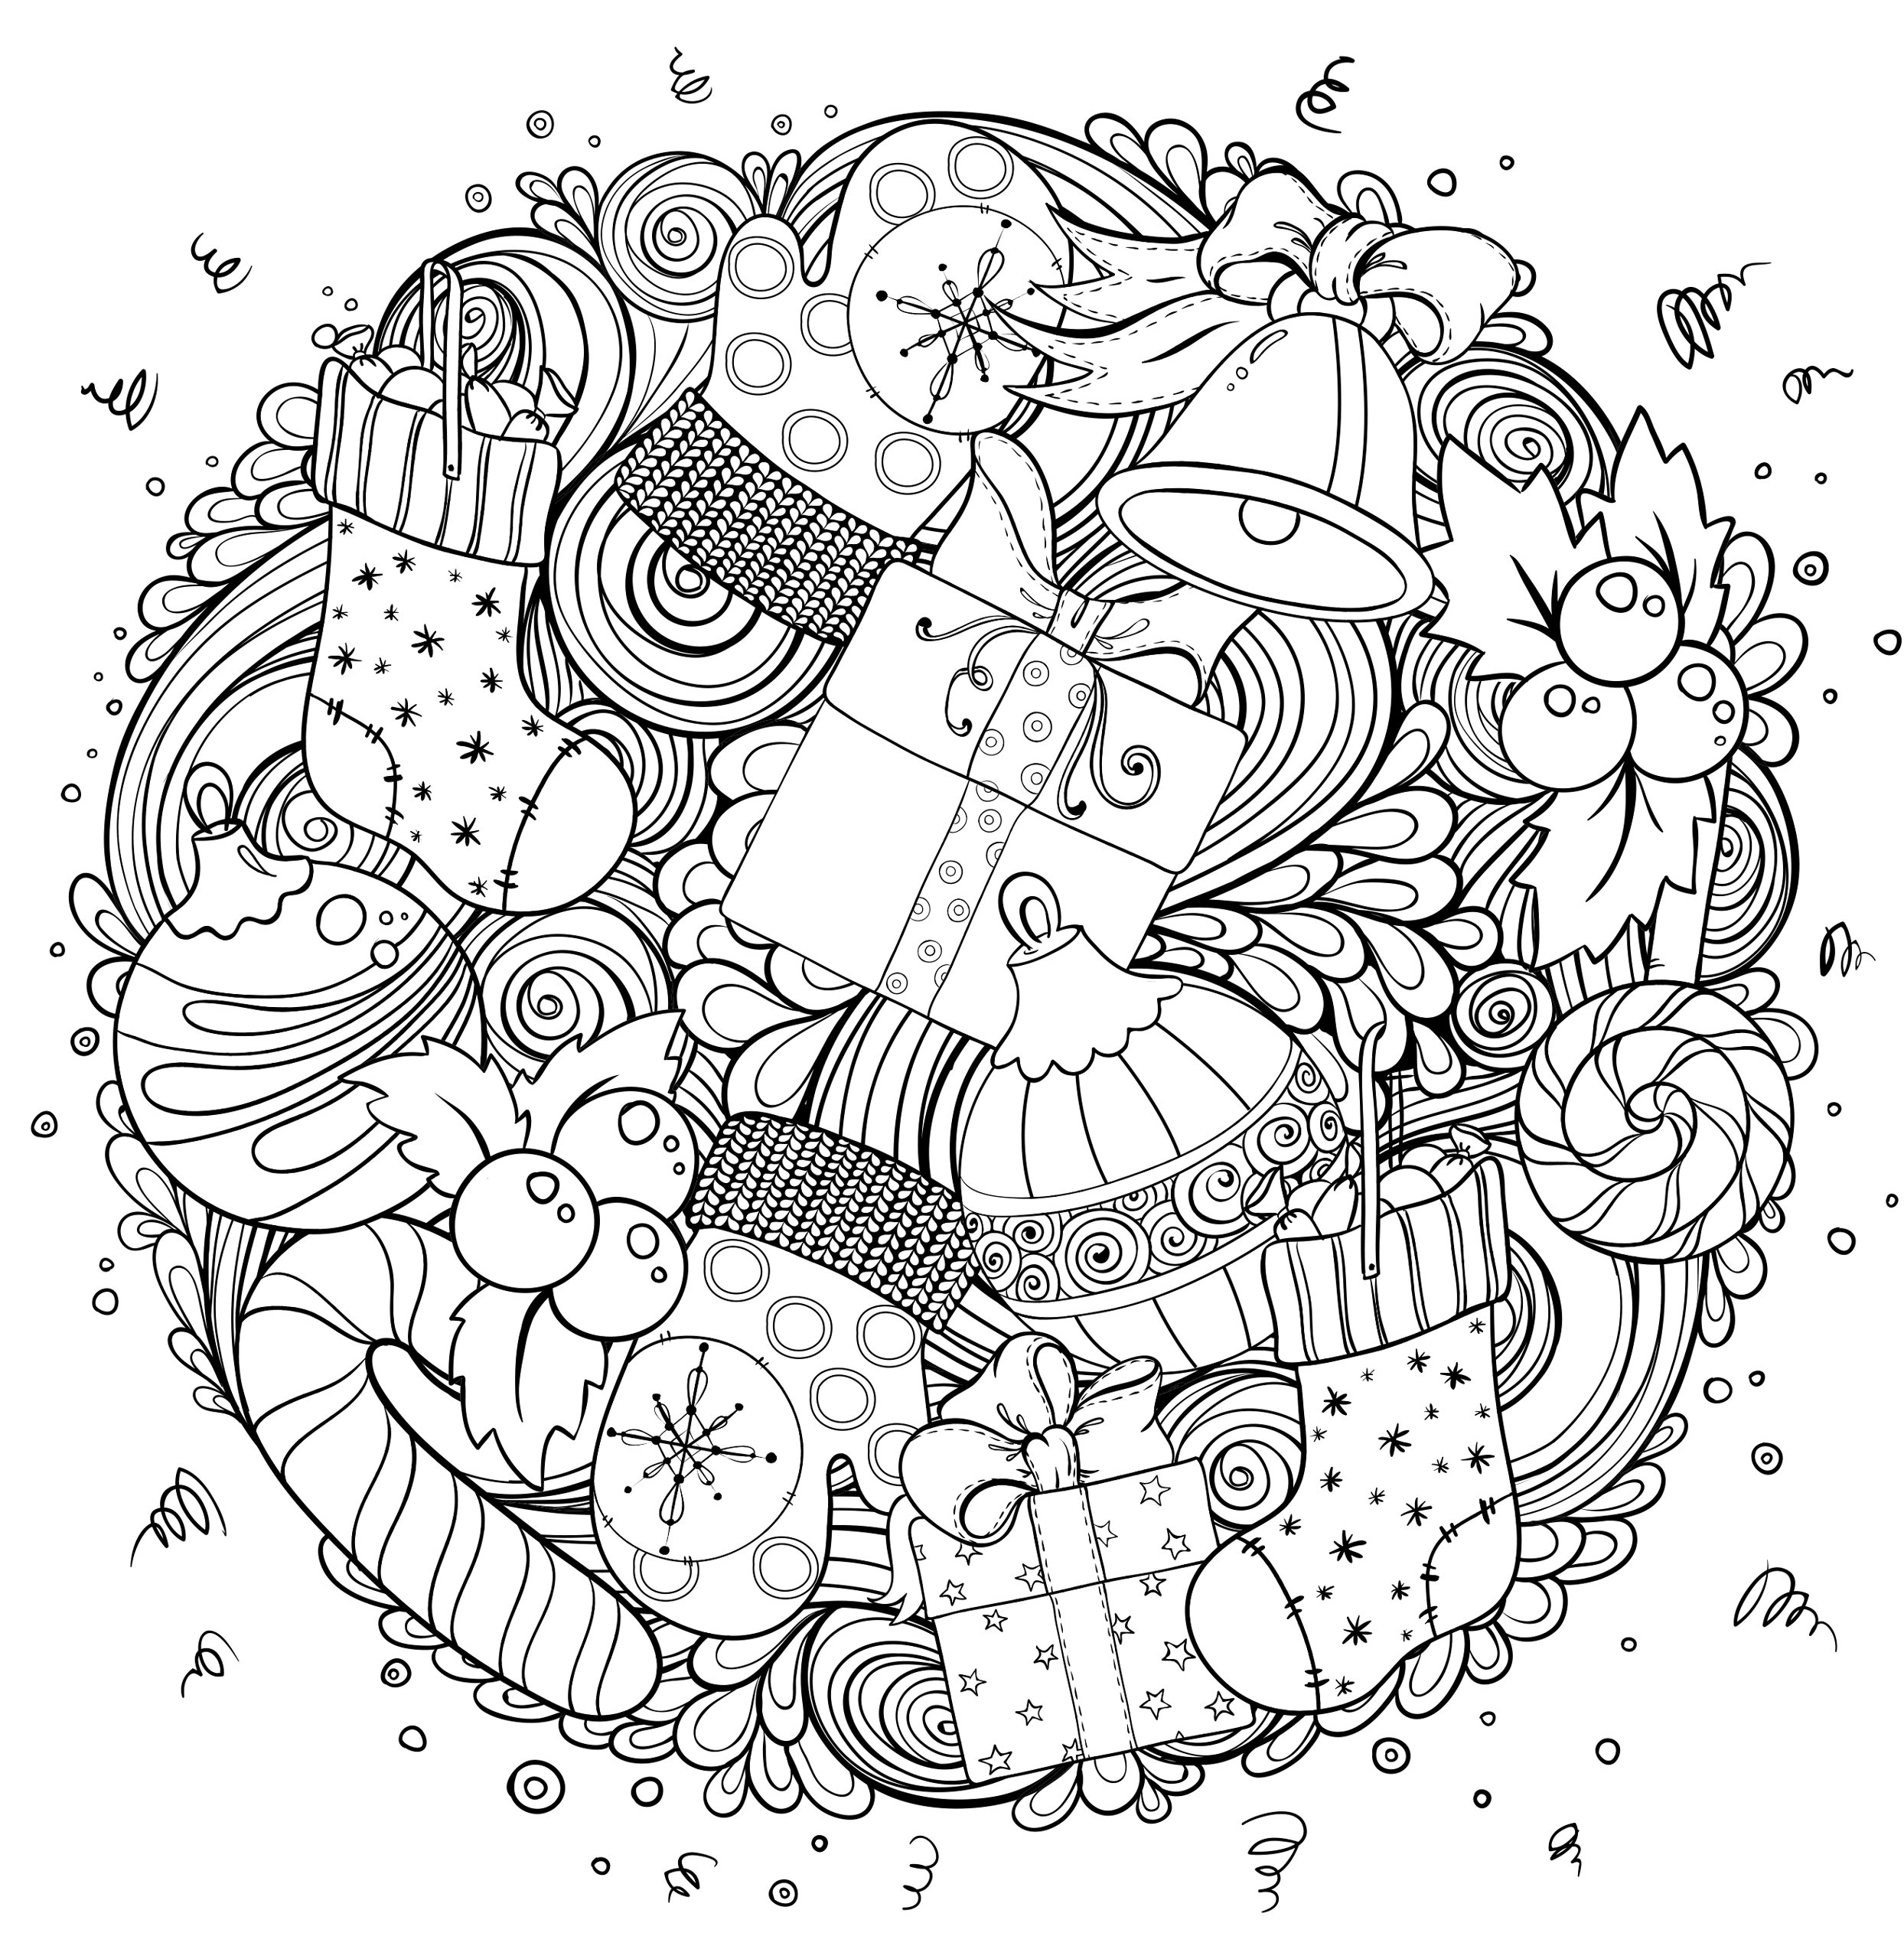 Christmas Designs Adult Coloring Book 31 Stress Relieving Amazonca Peter Pauper Press Books